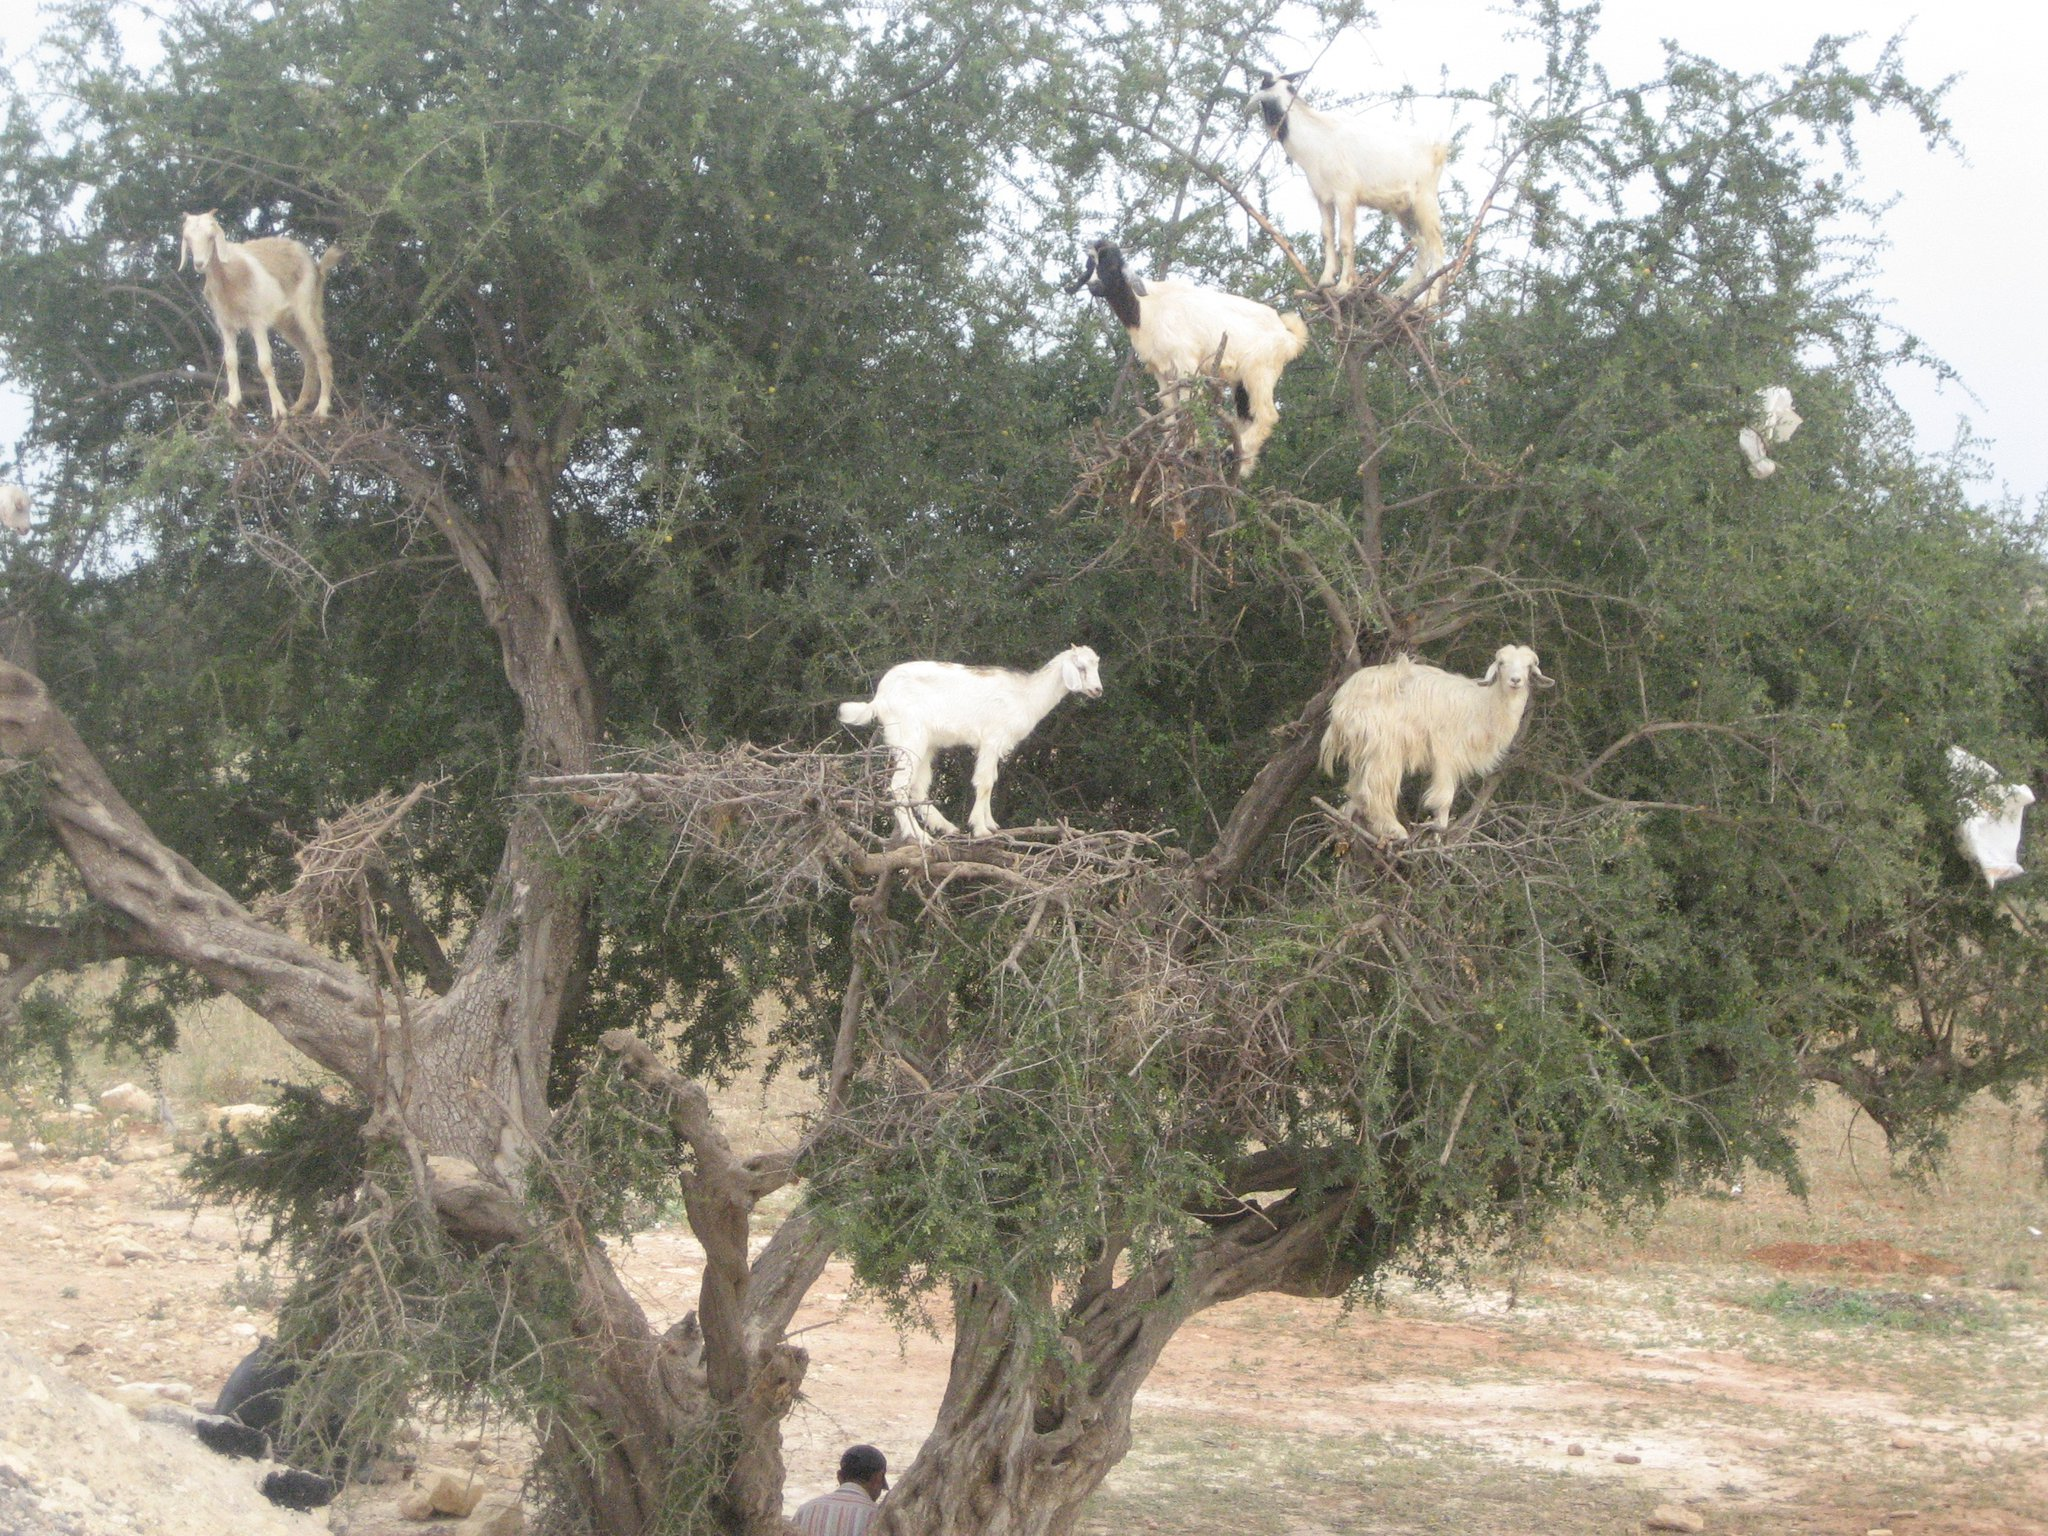 Goats in Trees Morocco